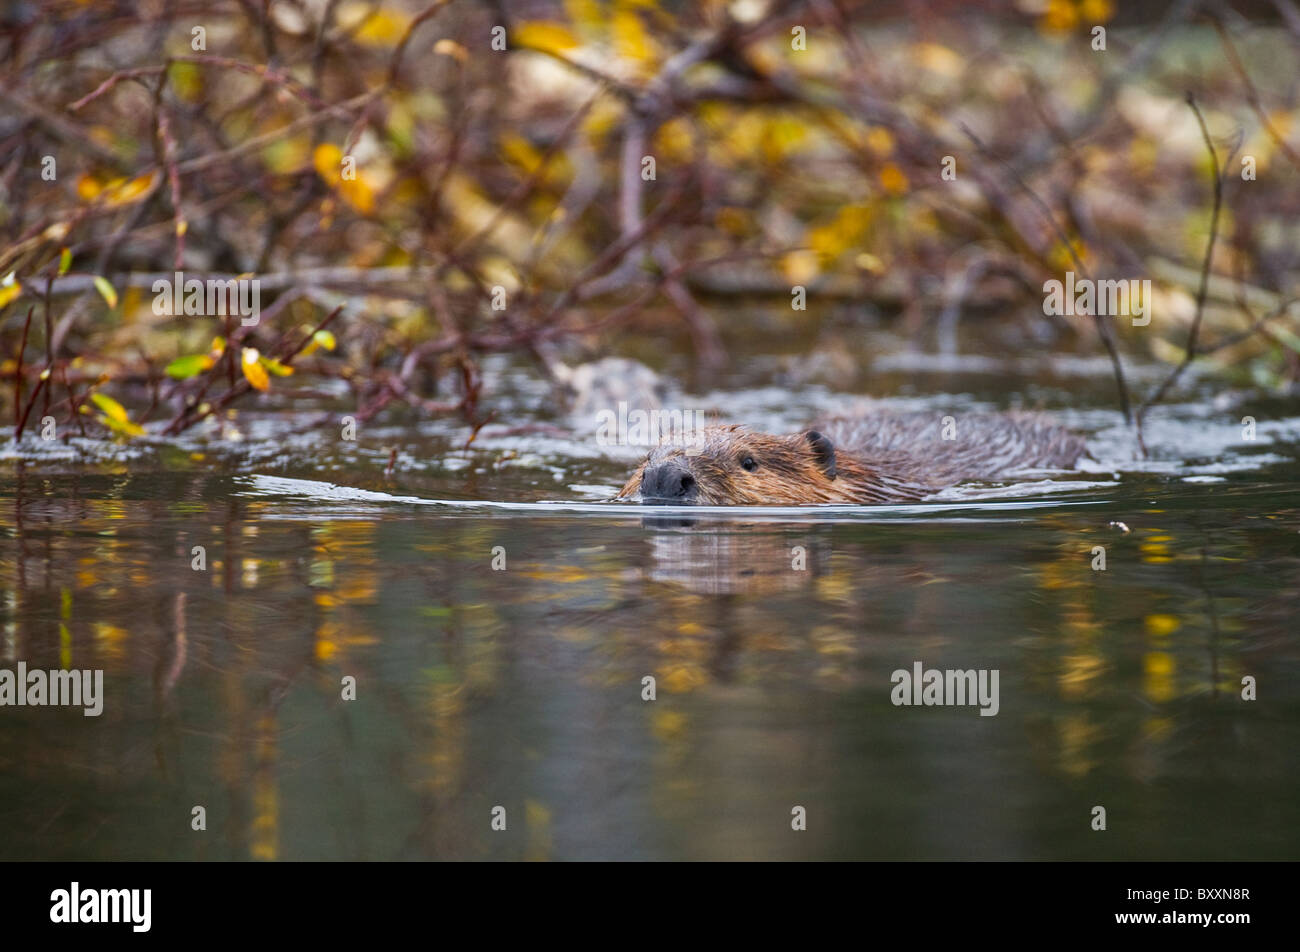 A beaver swims past his winter food storage pile in late autumn. - Stock Image